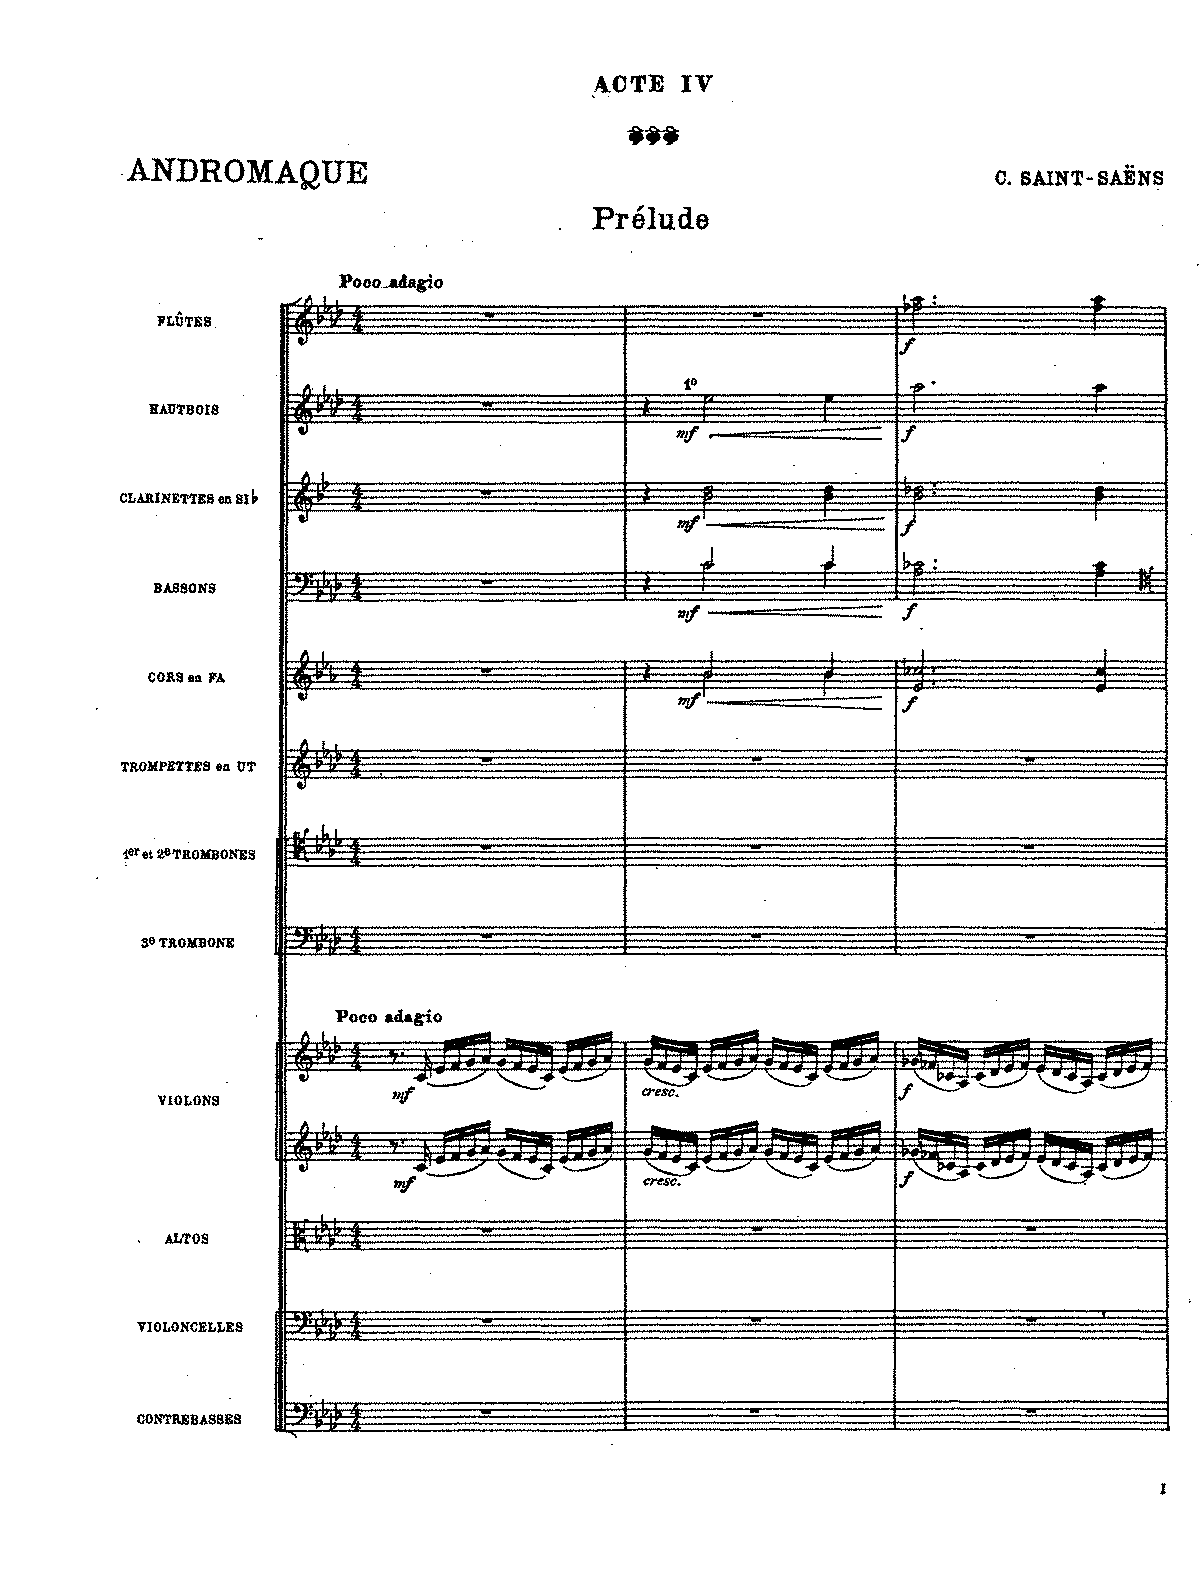 PMLP81519-Saint-Saëns - Andromaque (Prelude to Act IV).pdf